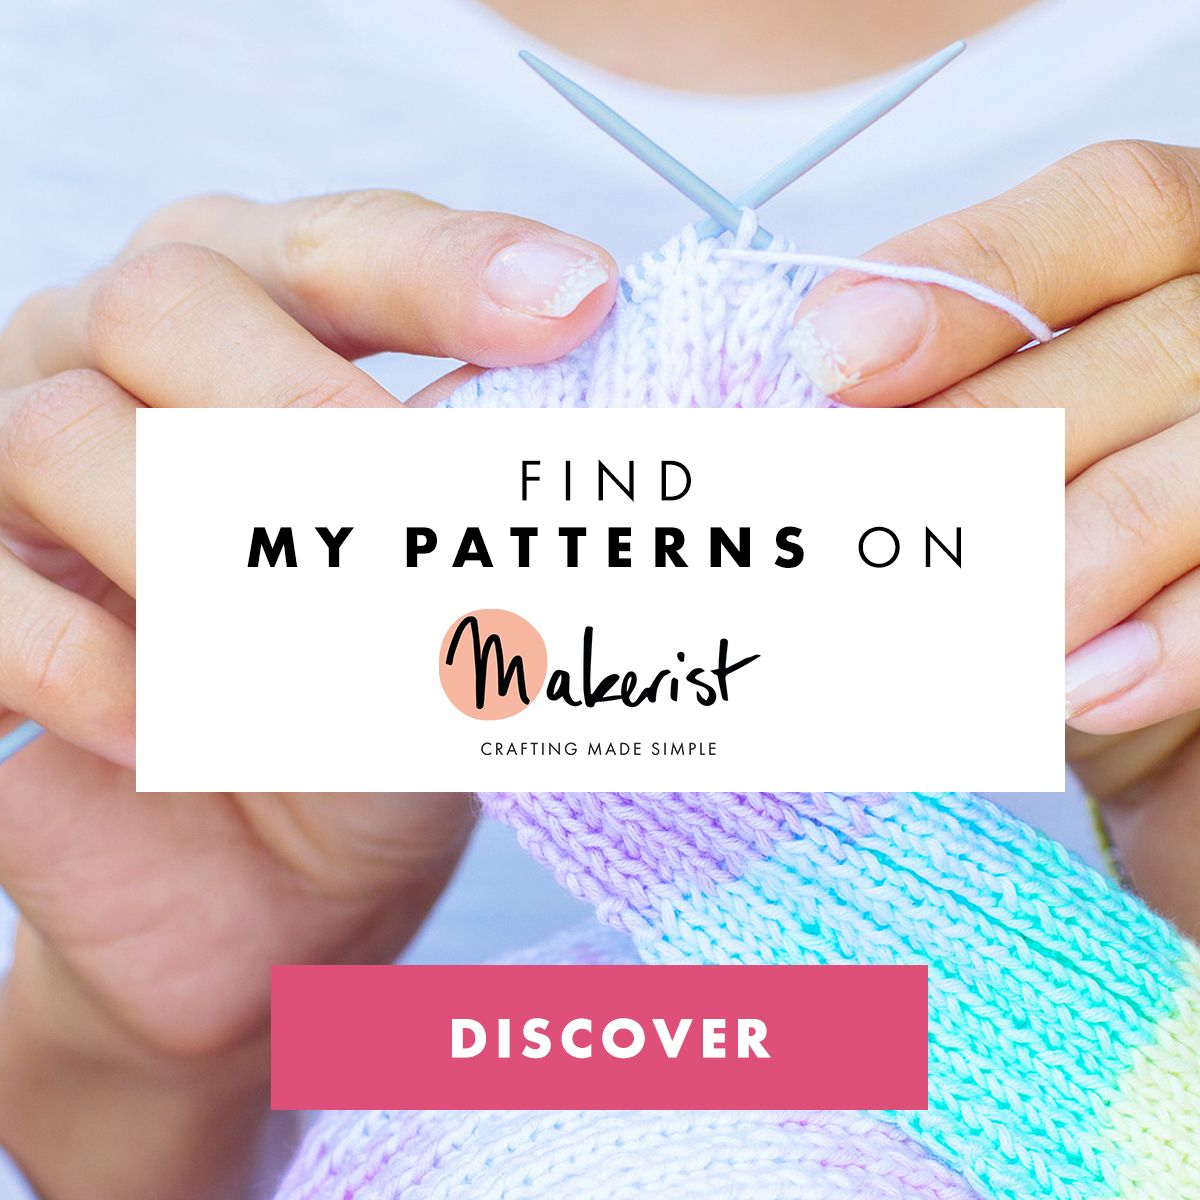 Knitting Patterns - Instagram!